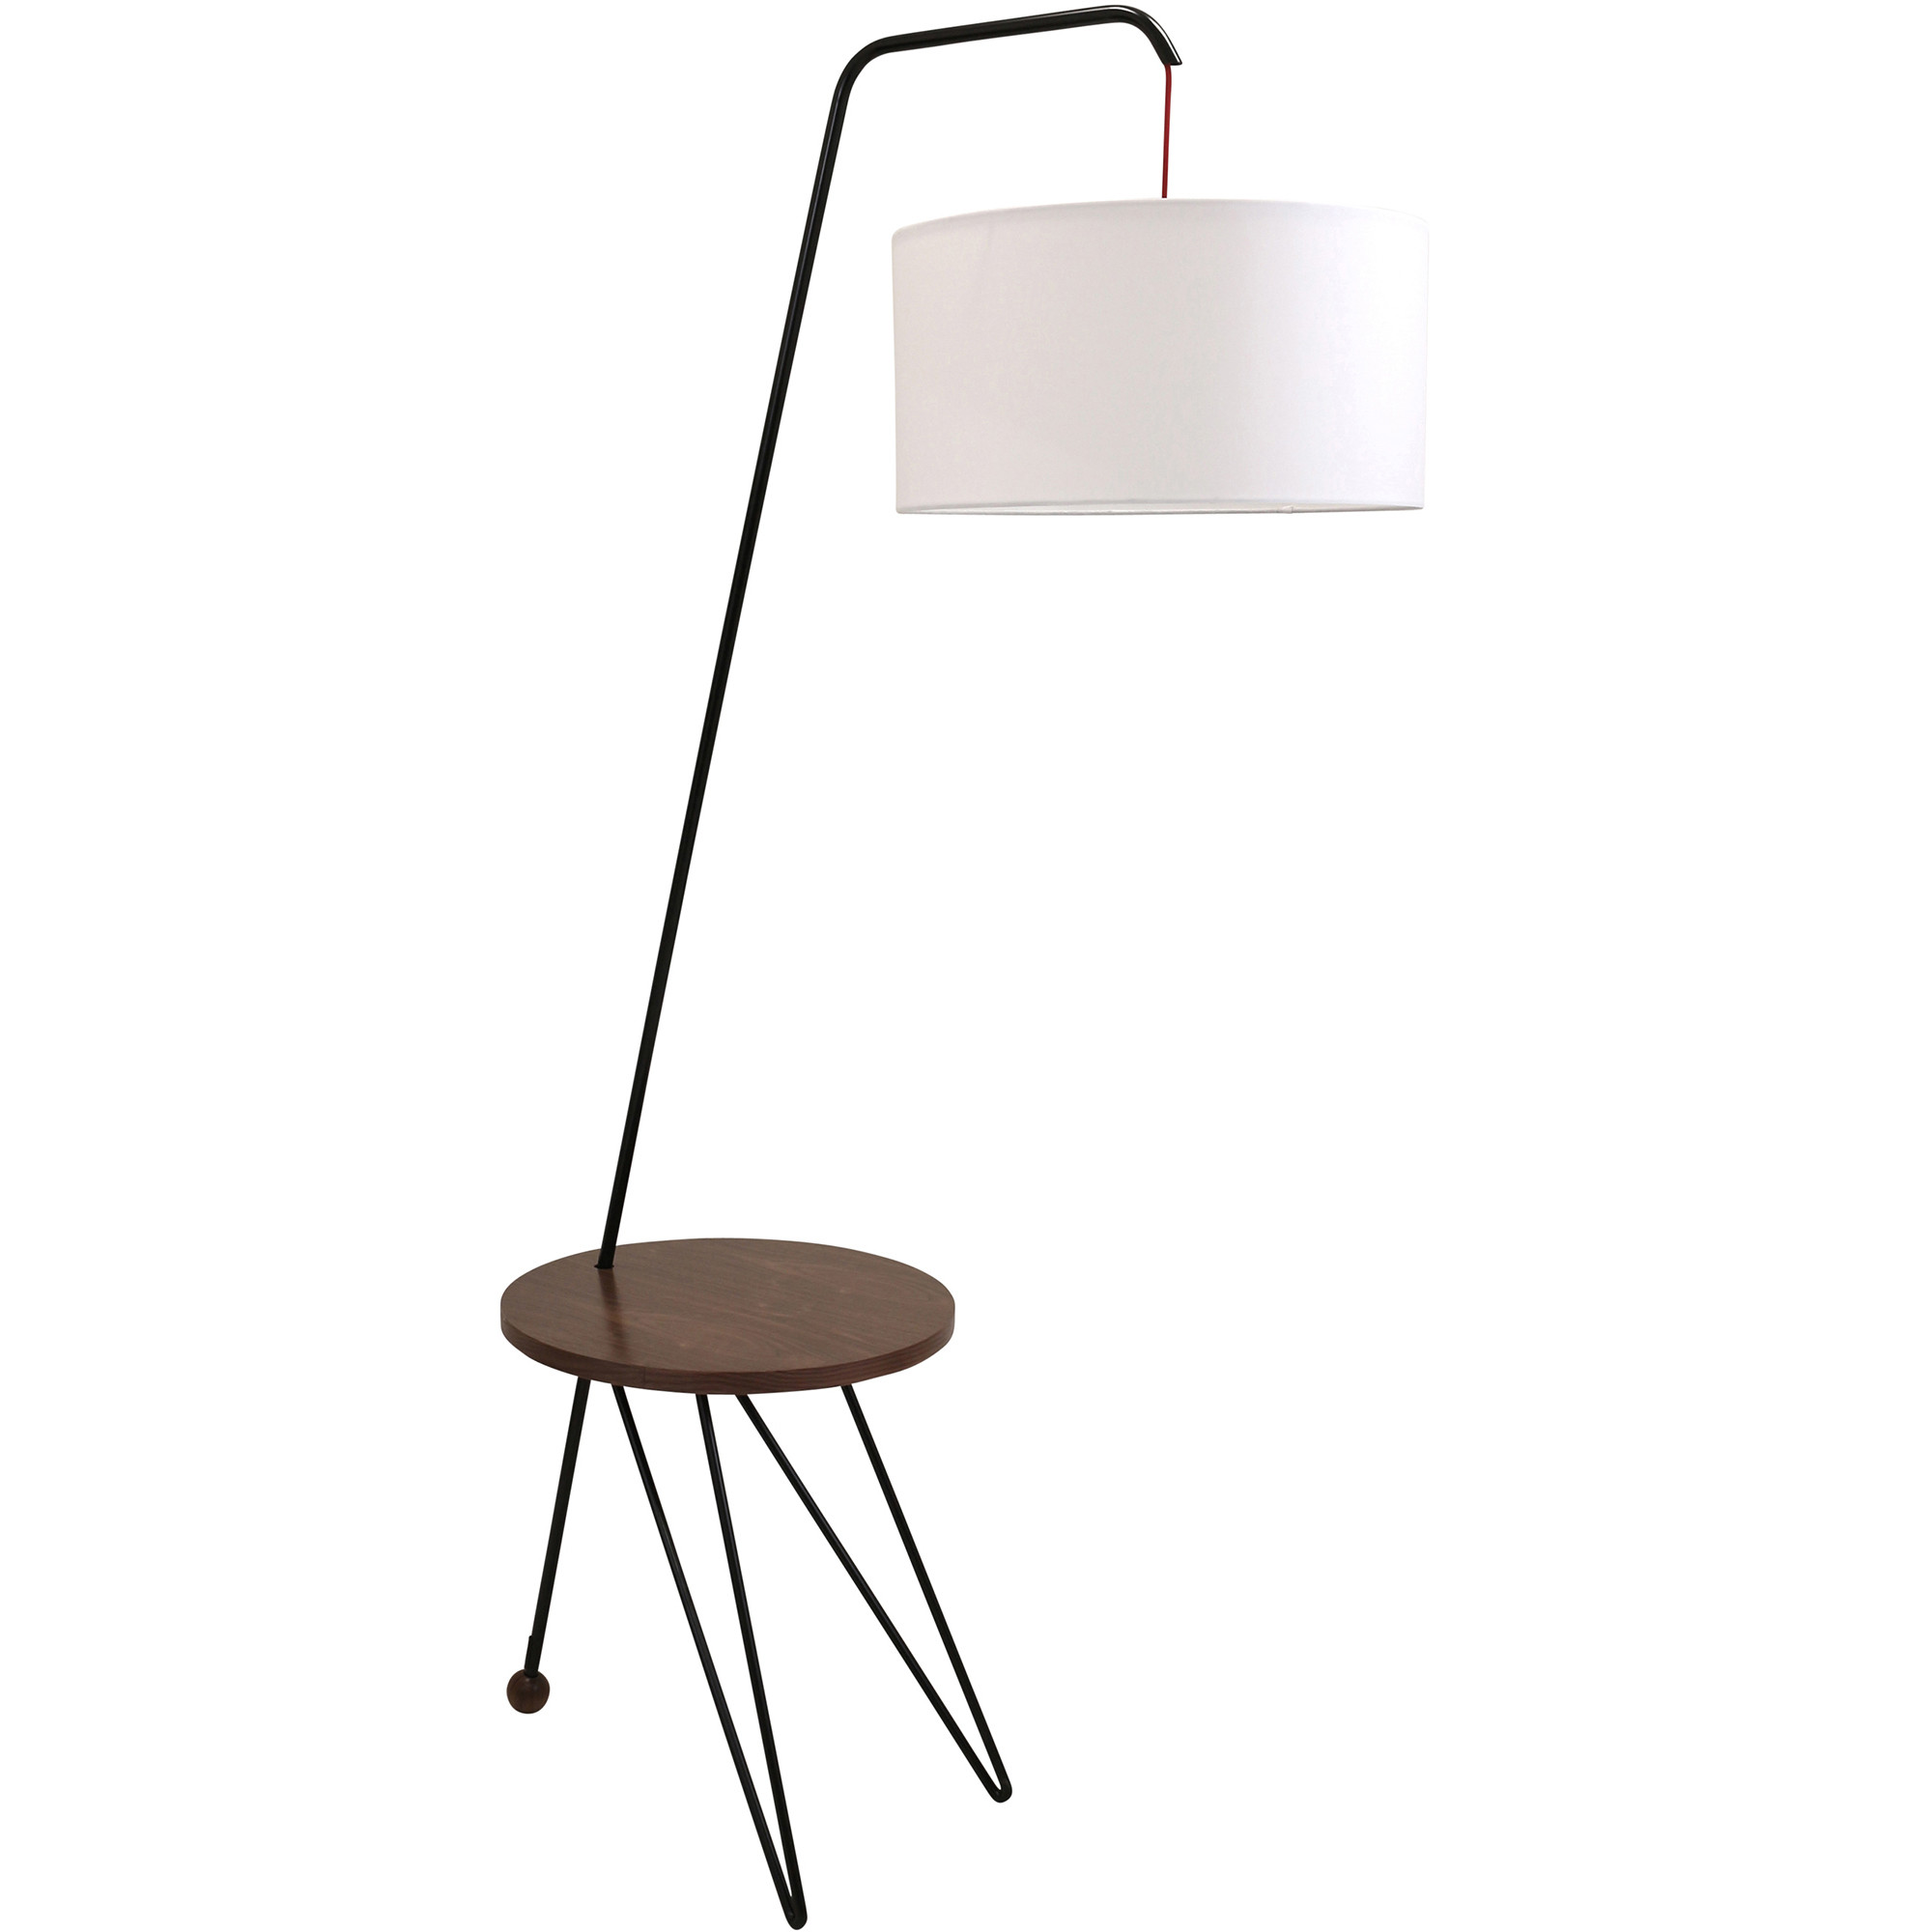 Stork Mid Century Modern Floor Lamp With Walnut Wood Table Accent By  LumiSource   Walmart.com